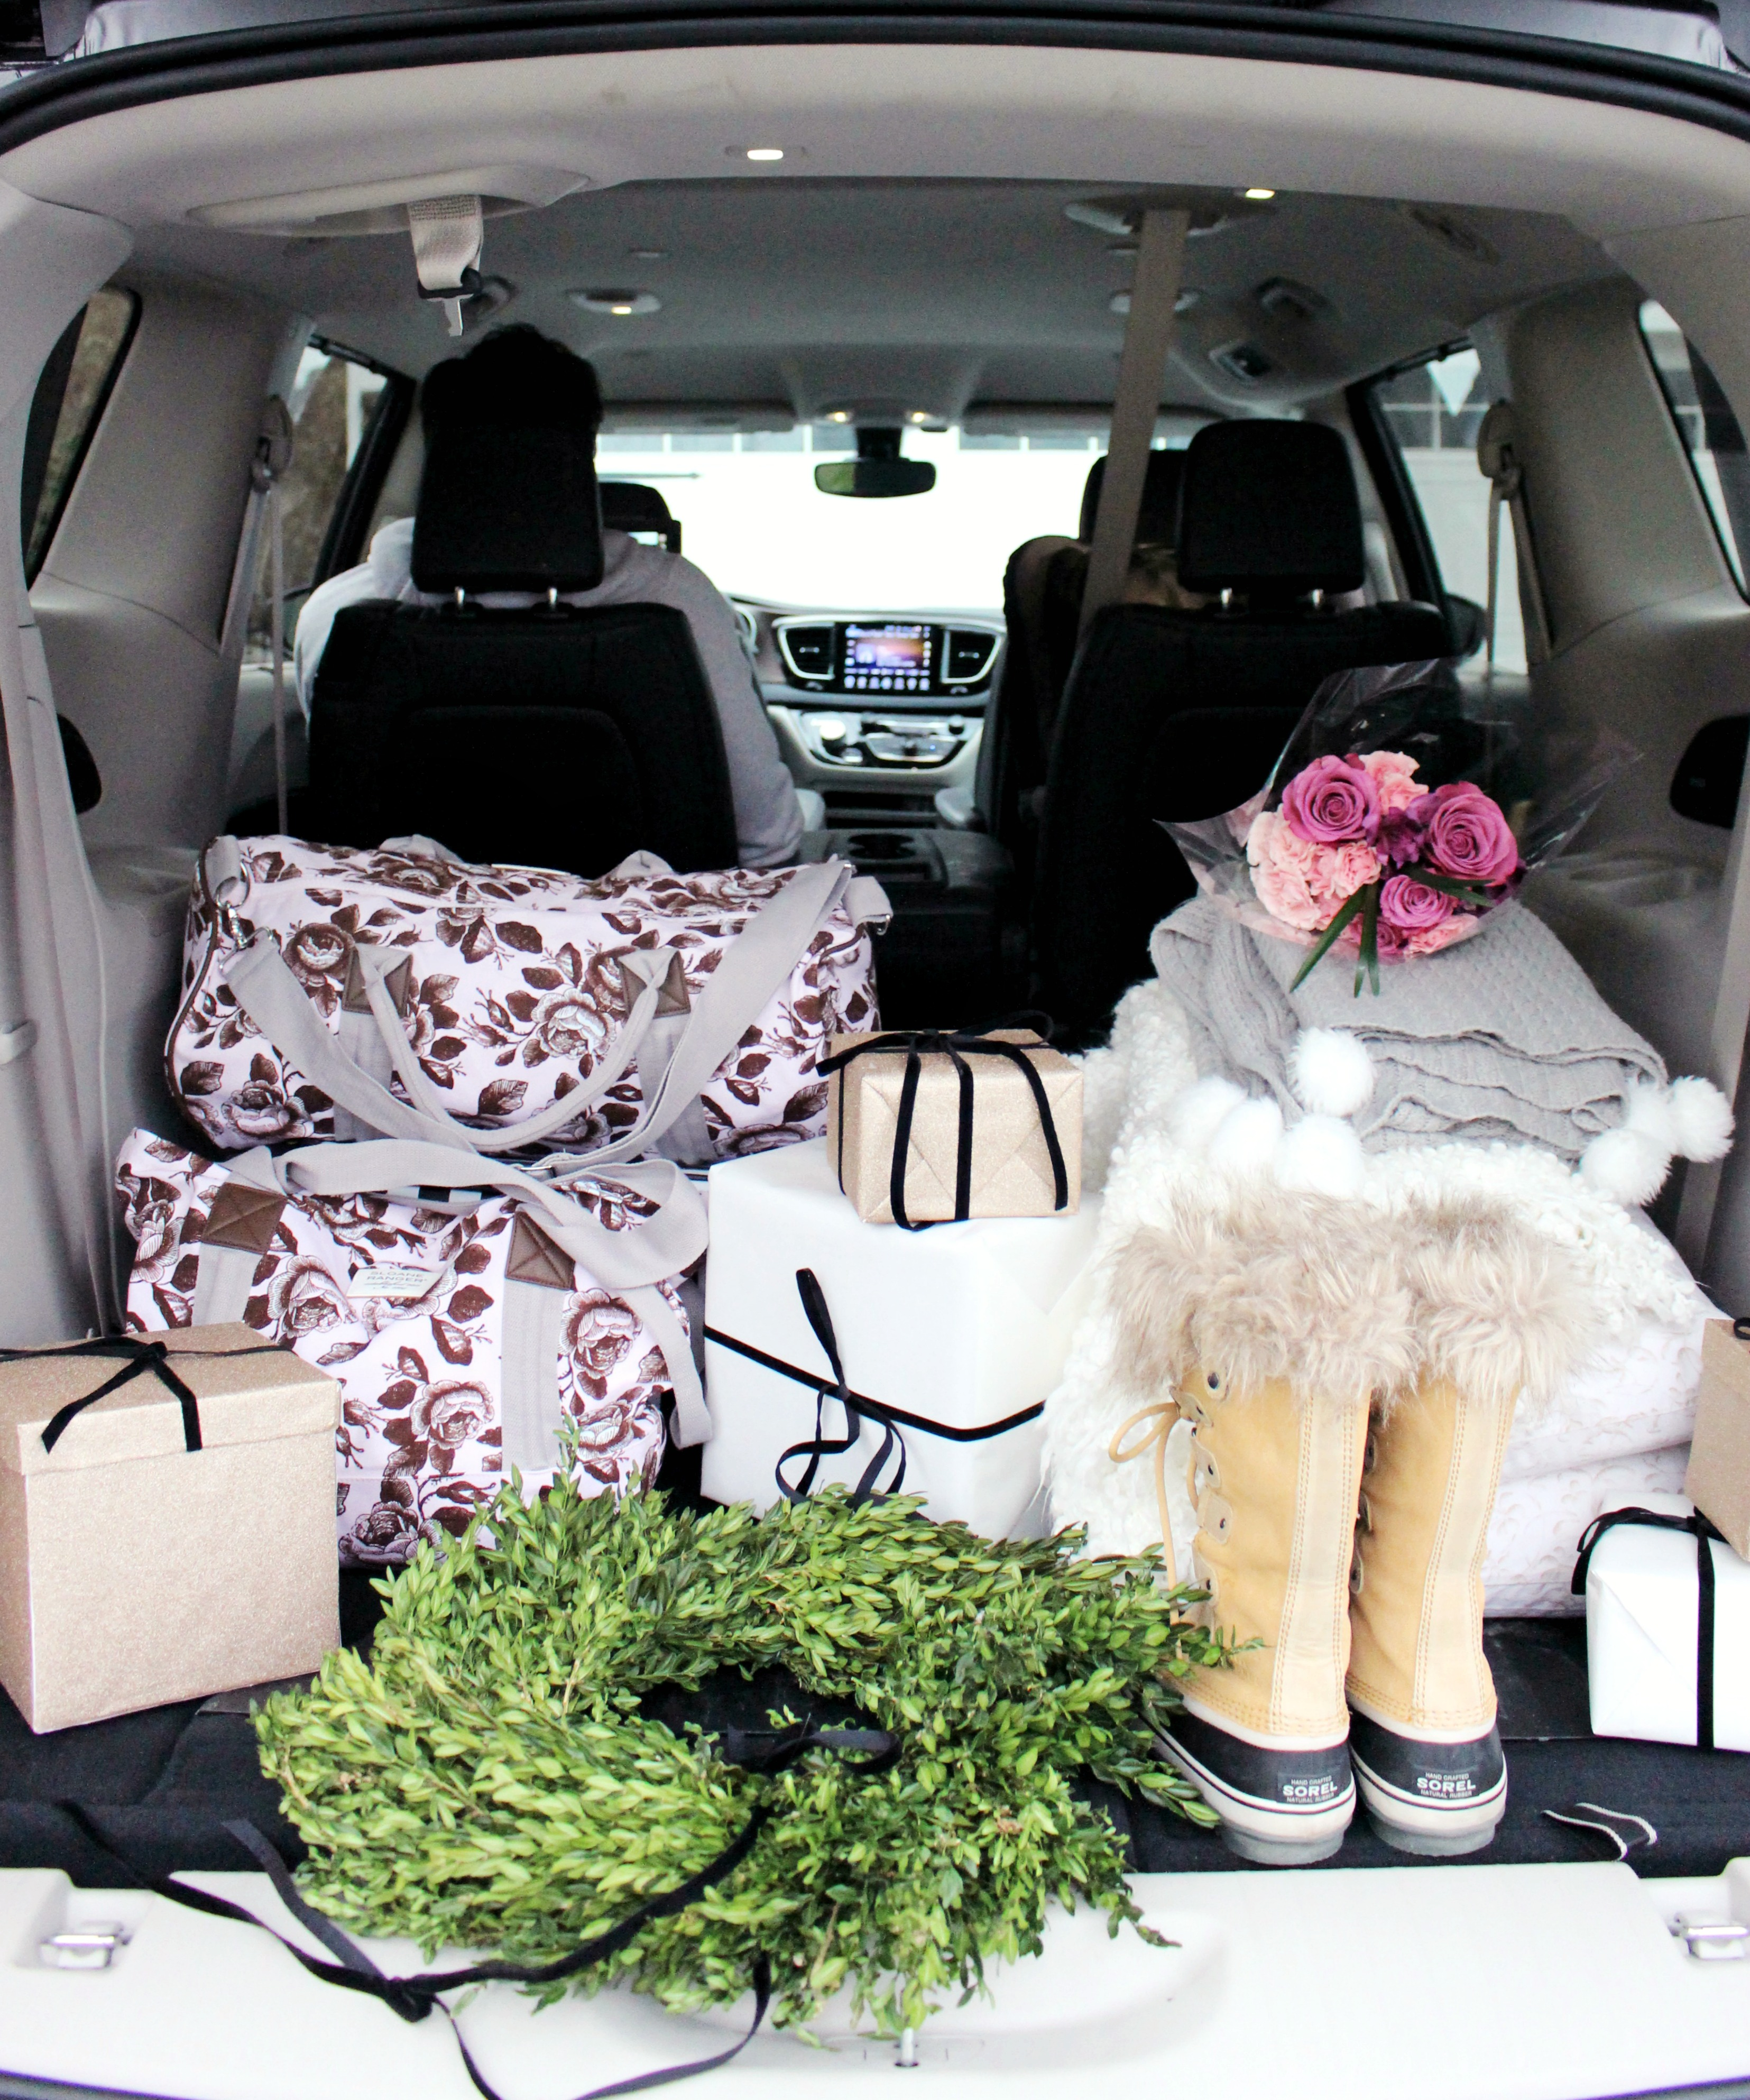 Home For The Holidays Zoe With Love's best road trip do's and don'ts for your family ft. the Chrysler Pacifica